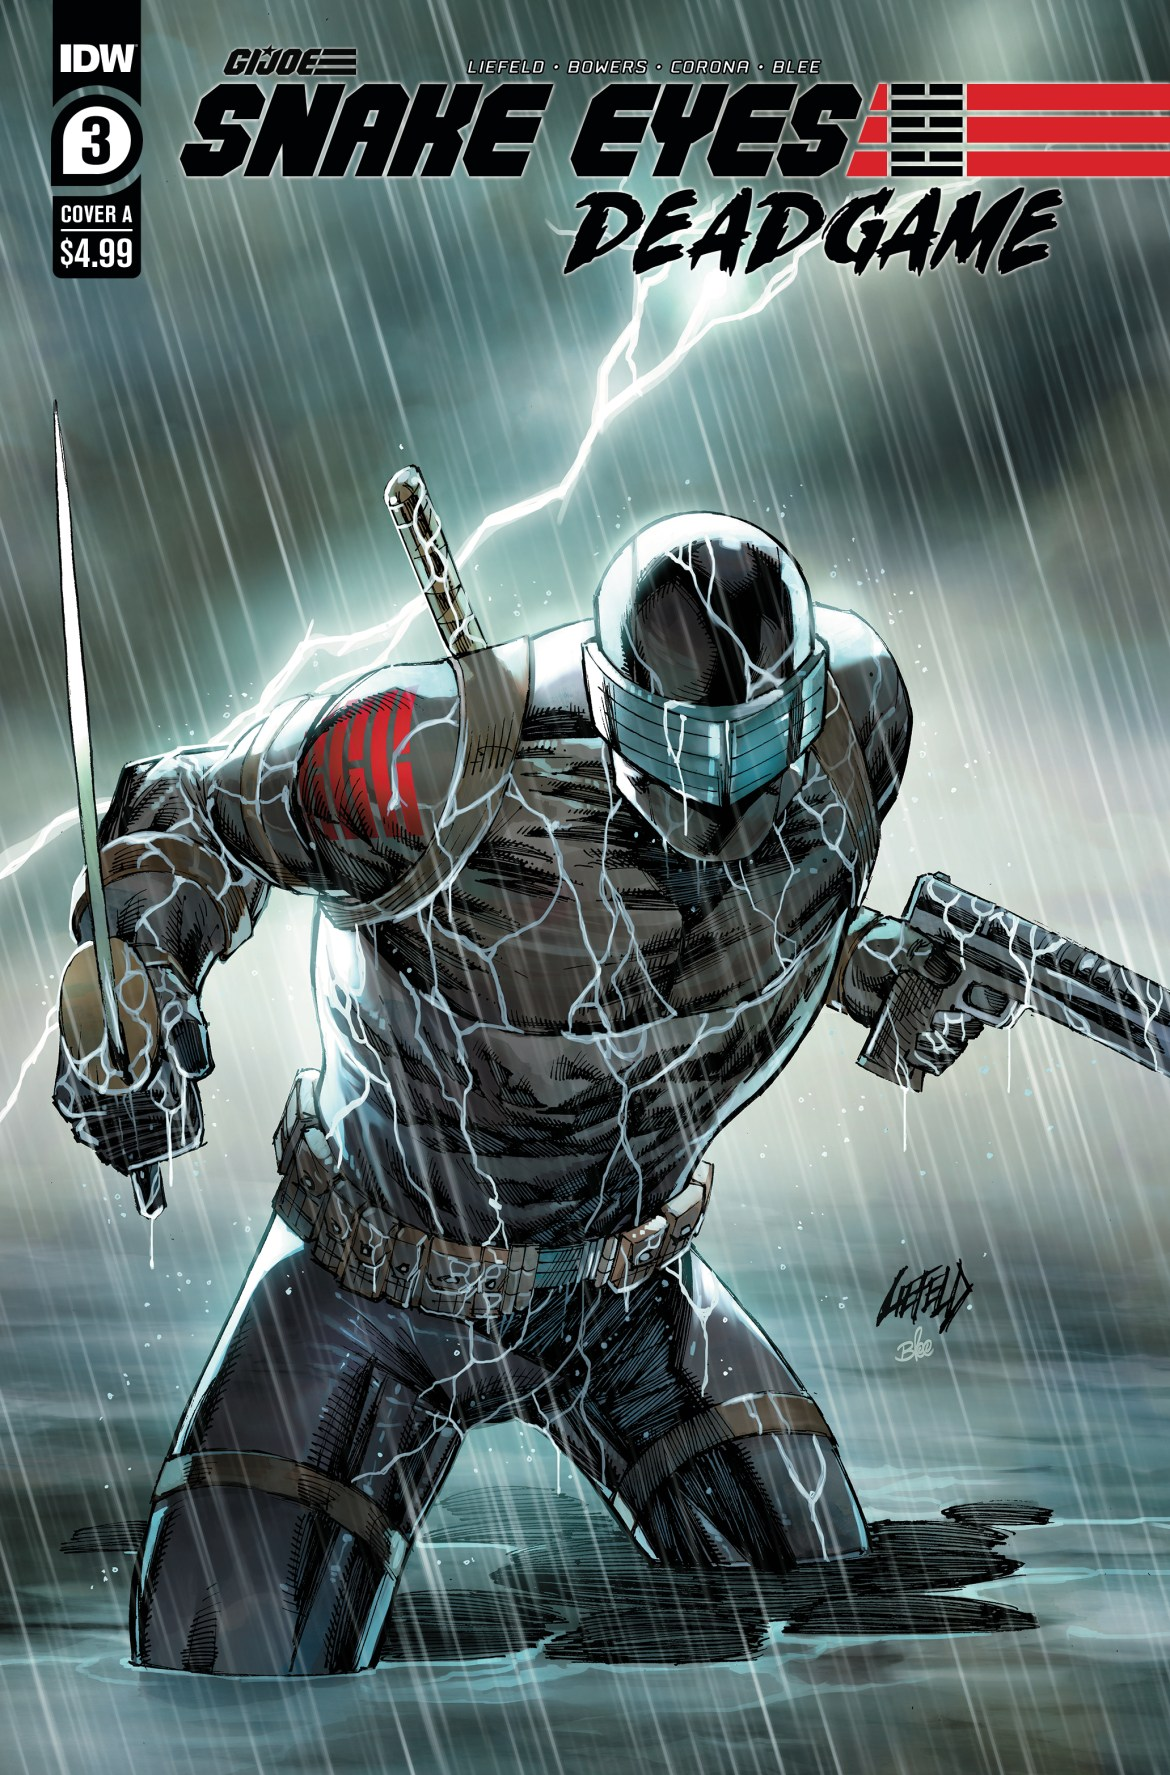 SnakeEyes_DG03-coverA ComicList: IDW Publishing New Releases for 11/25/2020